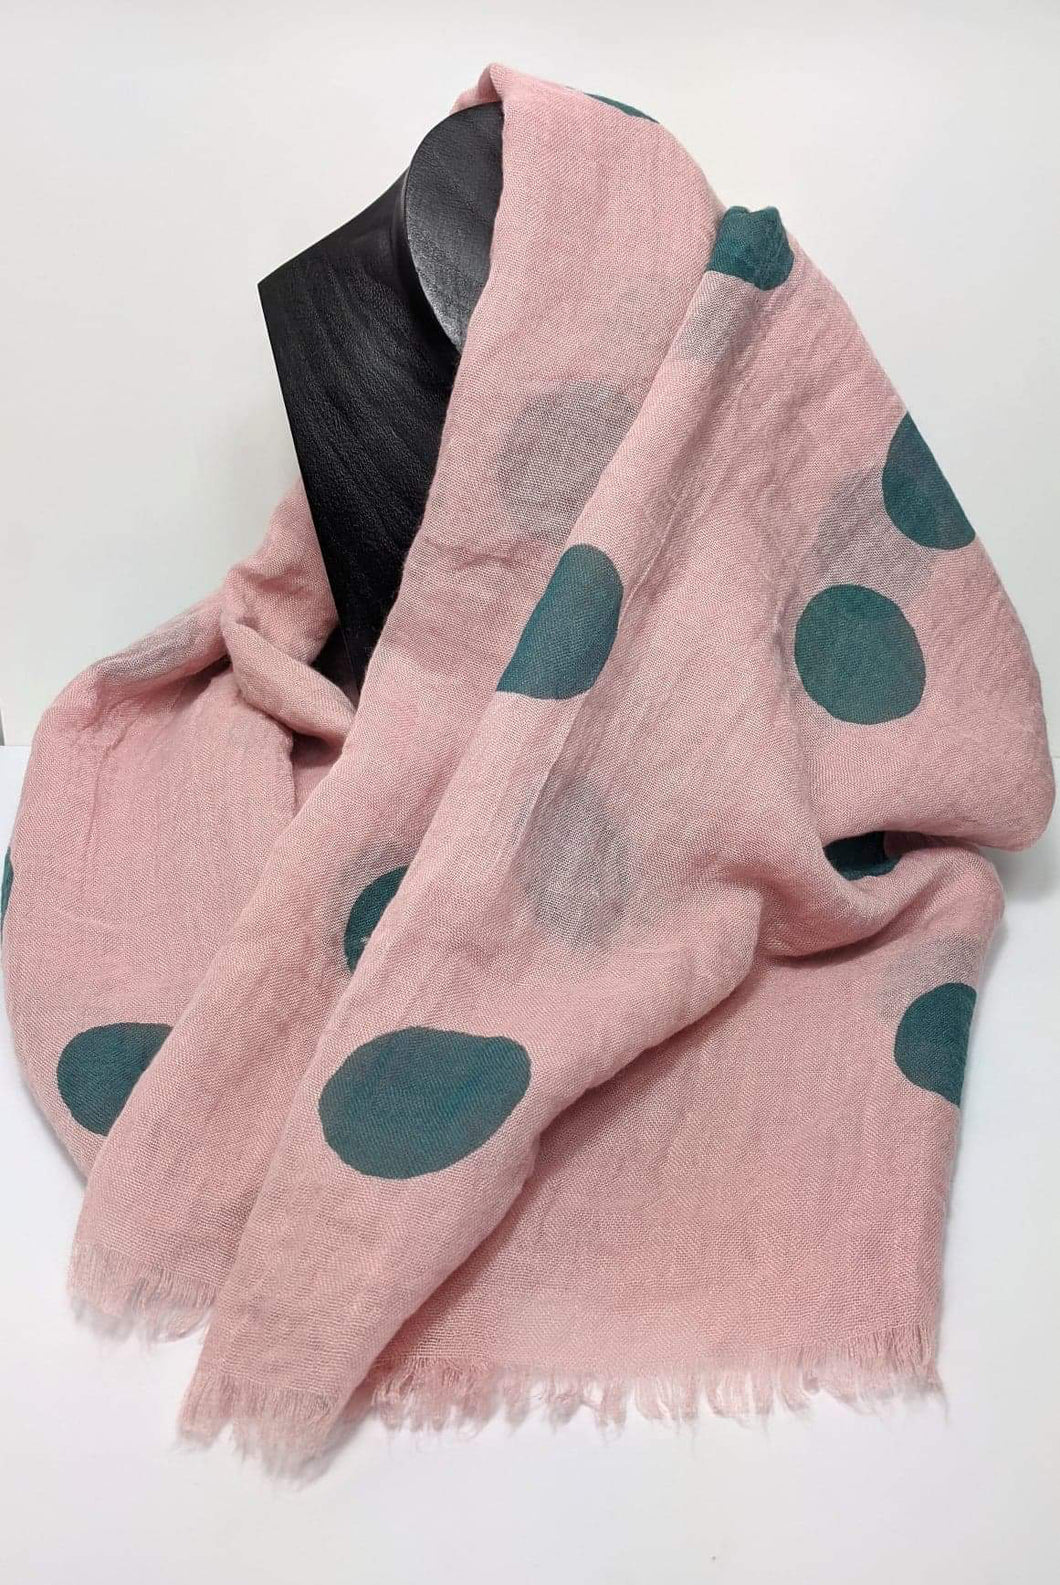 Lua Pale Pink and Teal Polka Dot Scarf